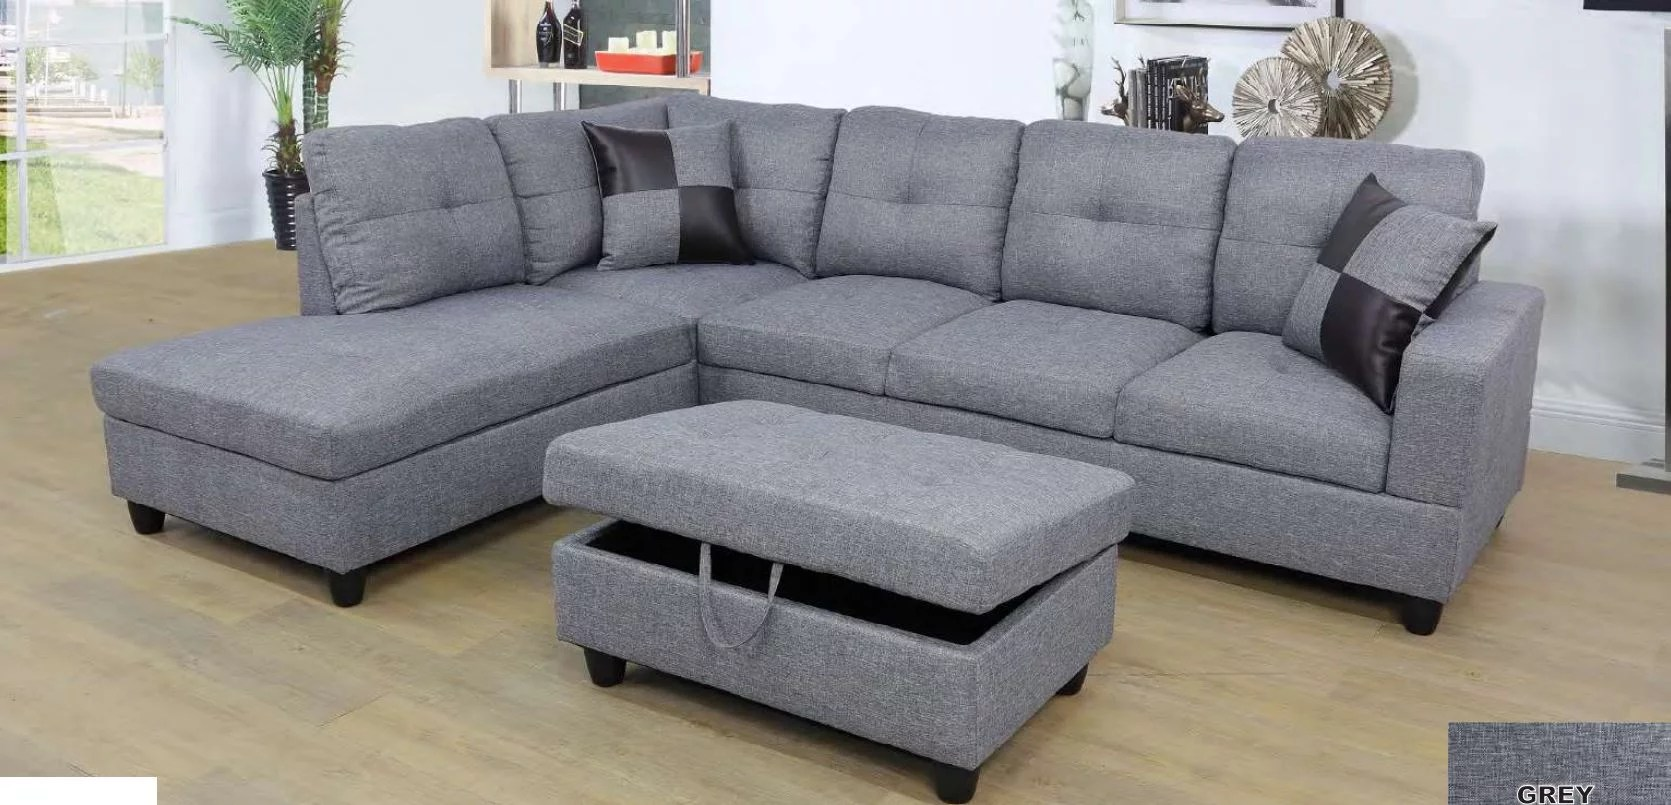 ult gray microfiber sectional sofa left facing chaise 74 5 d x 103 5 w x 35 h